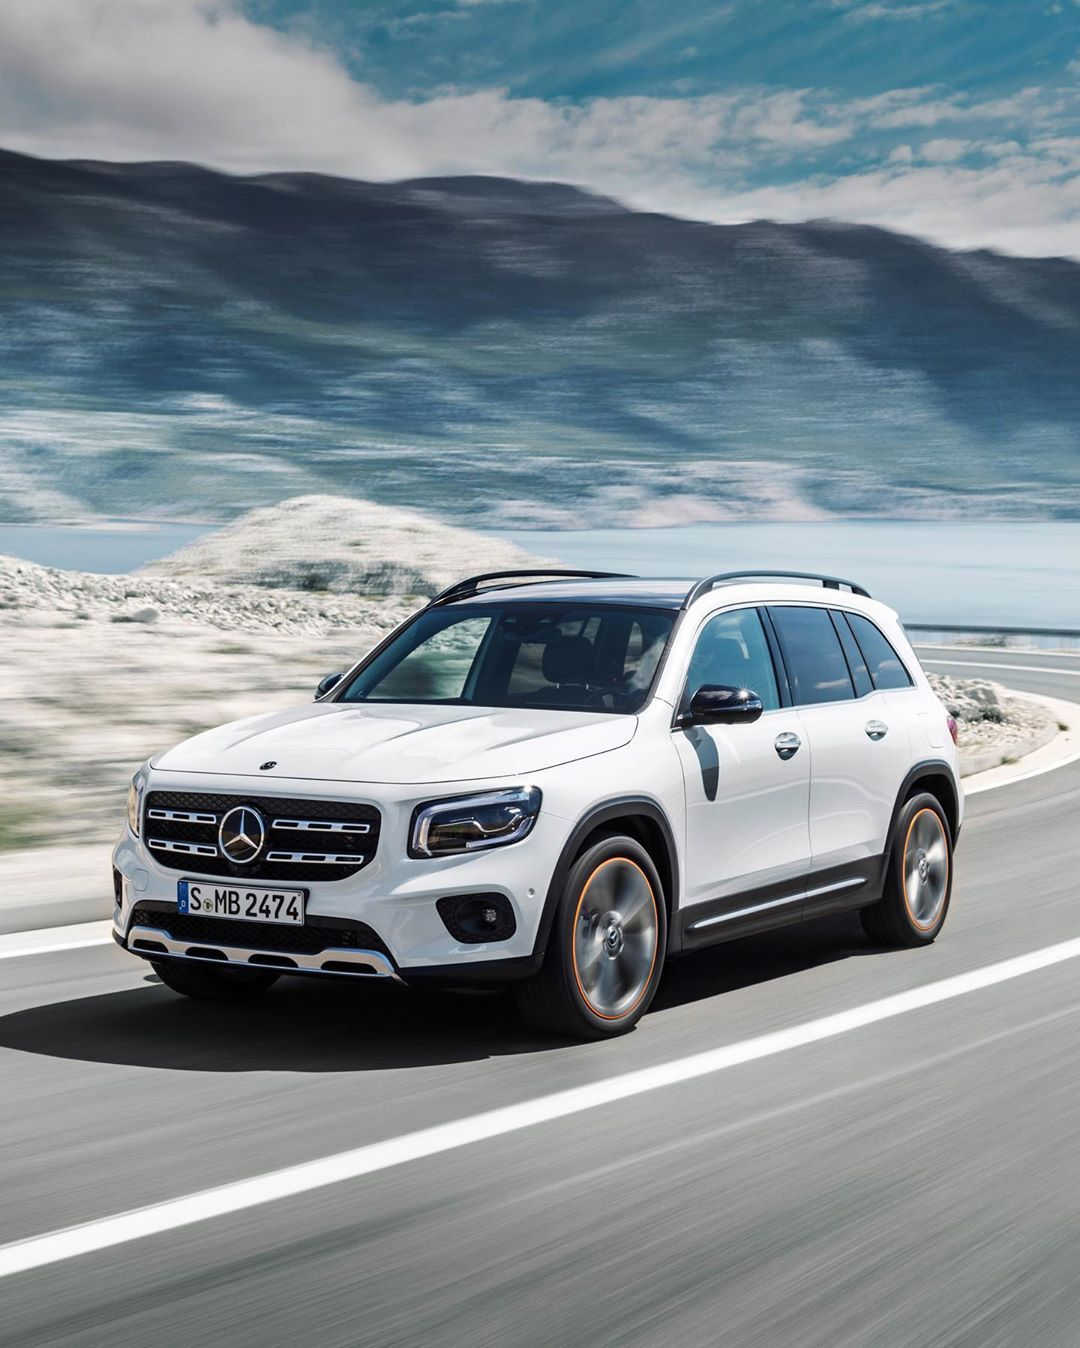 Pin By Noname On Mercedes Benz Glb In 2020